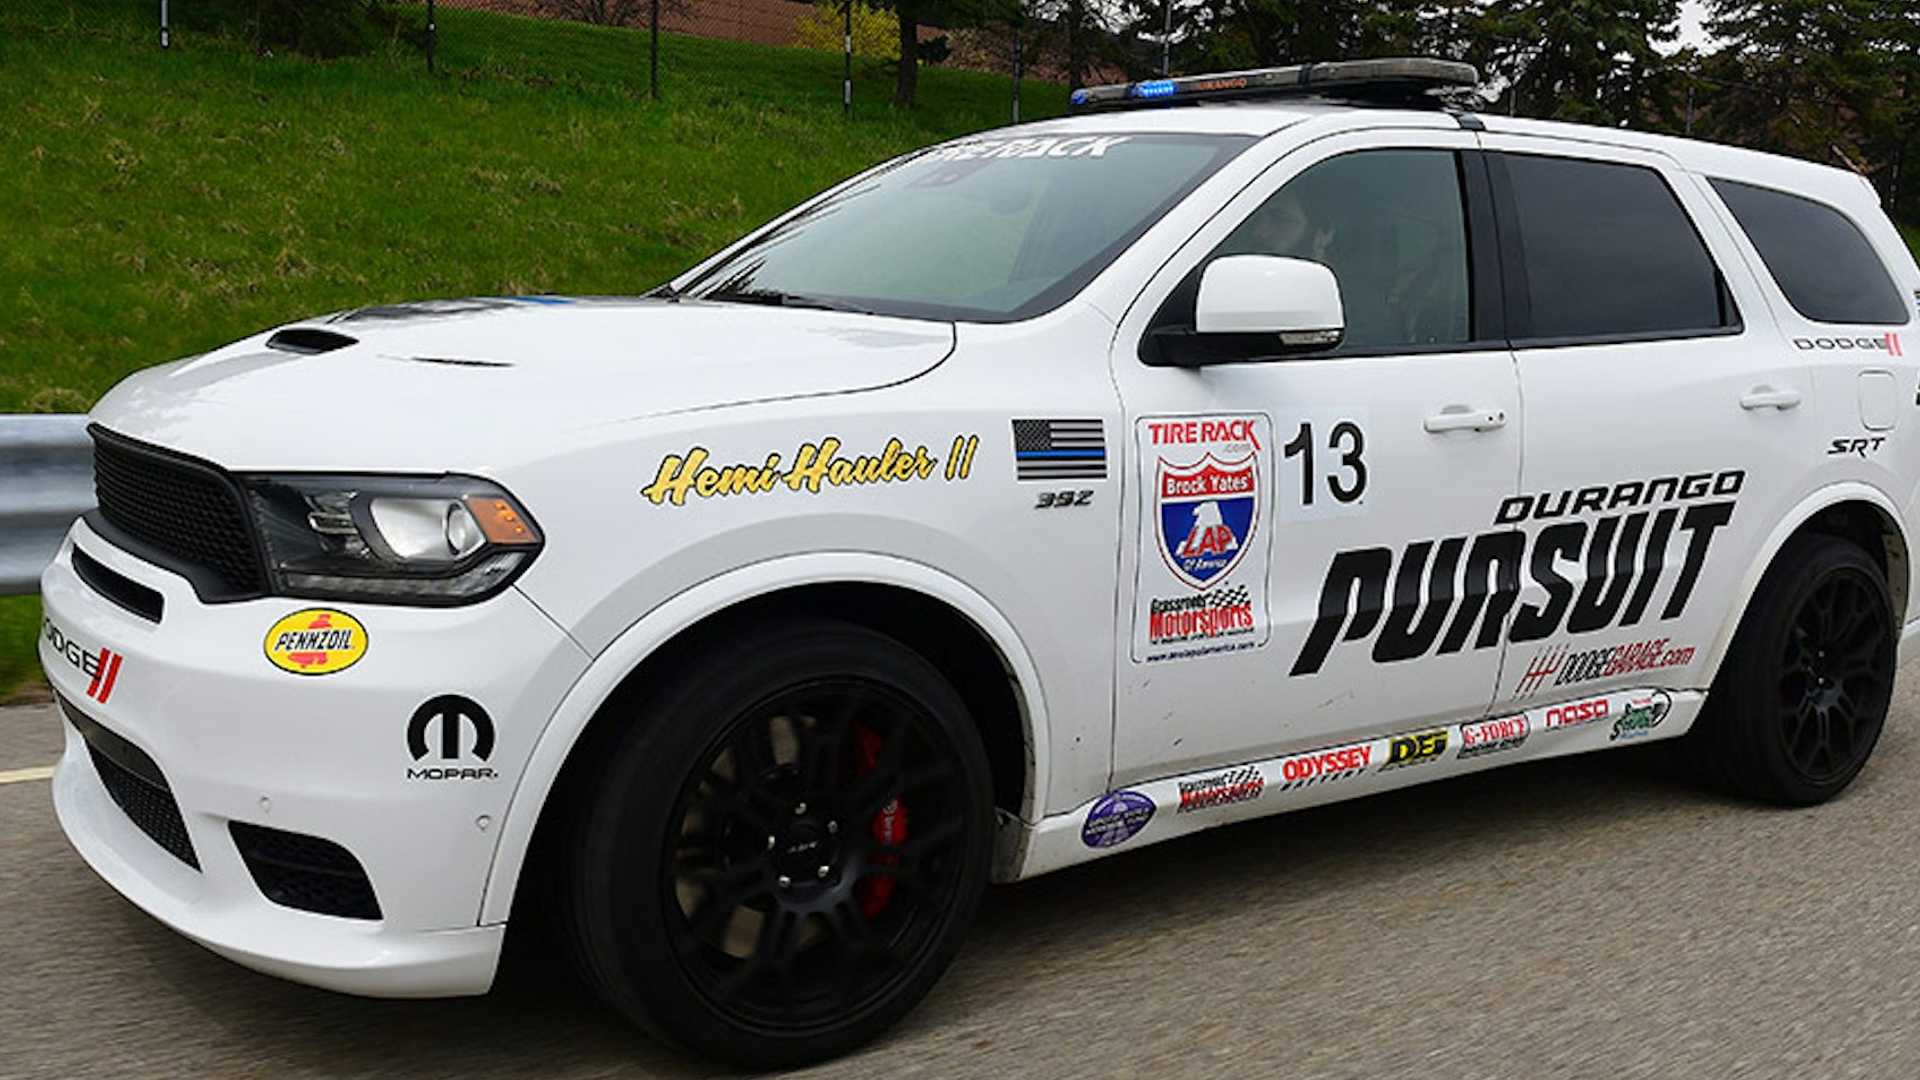 Watch 797 Hp Dodge Durango Accelerate With Brutal Force